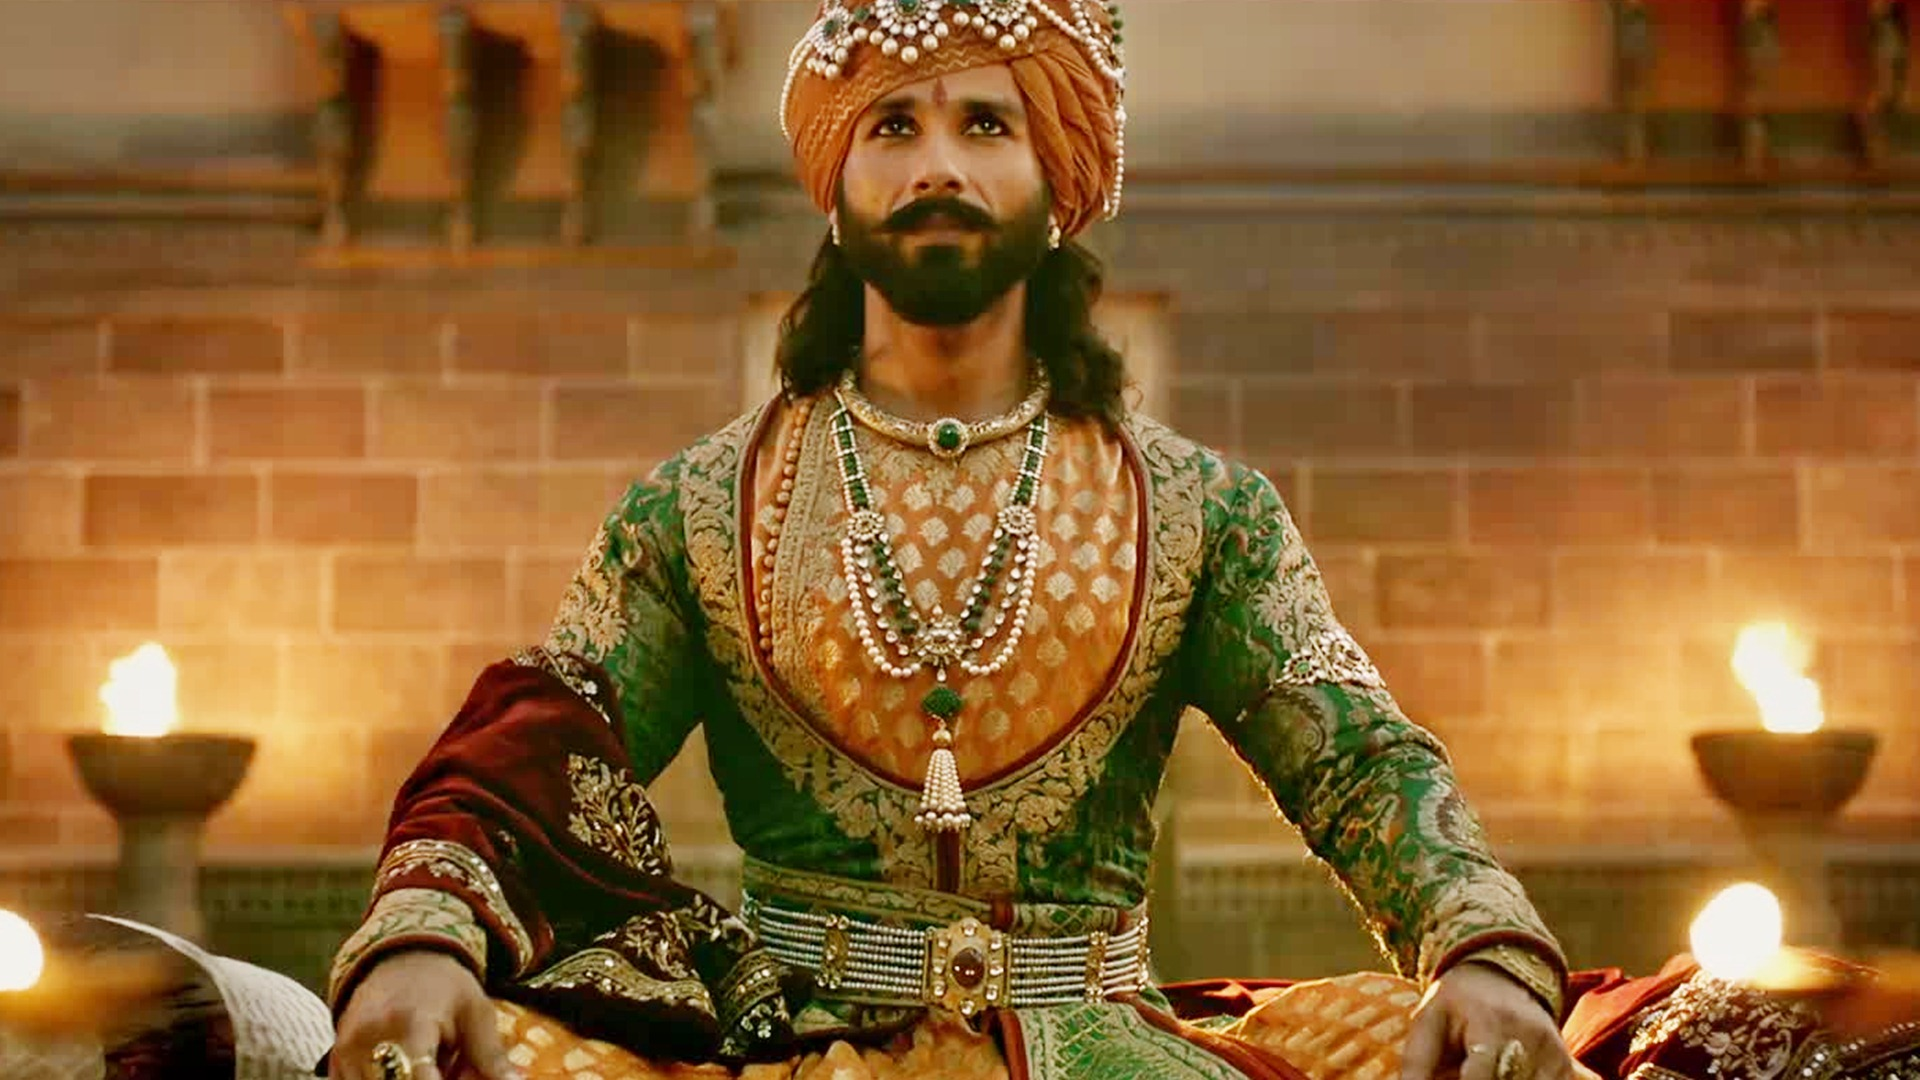 Shahid Kapoor as Ratan Singh in Padmaavat